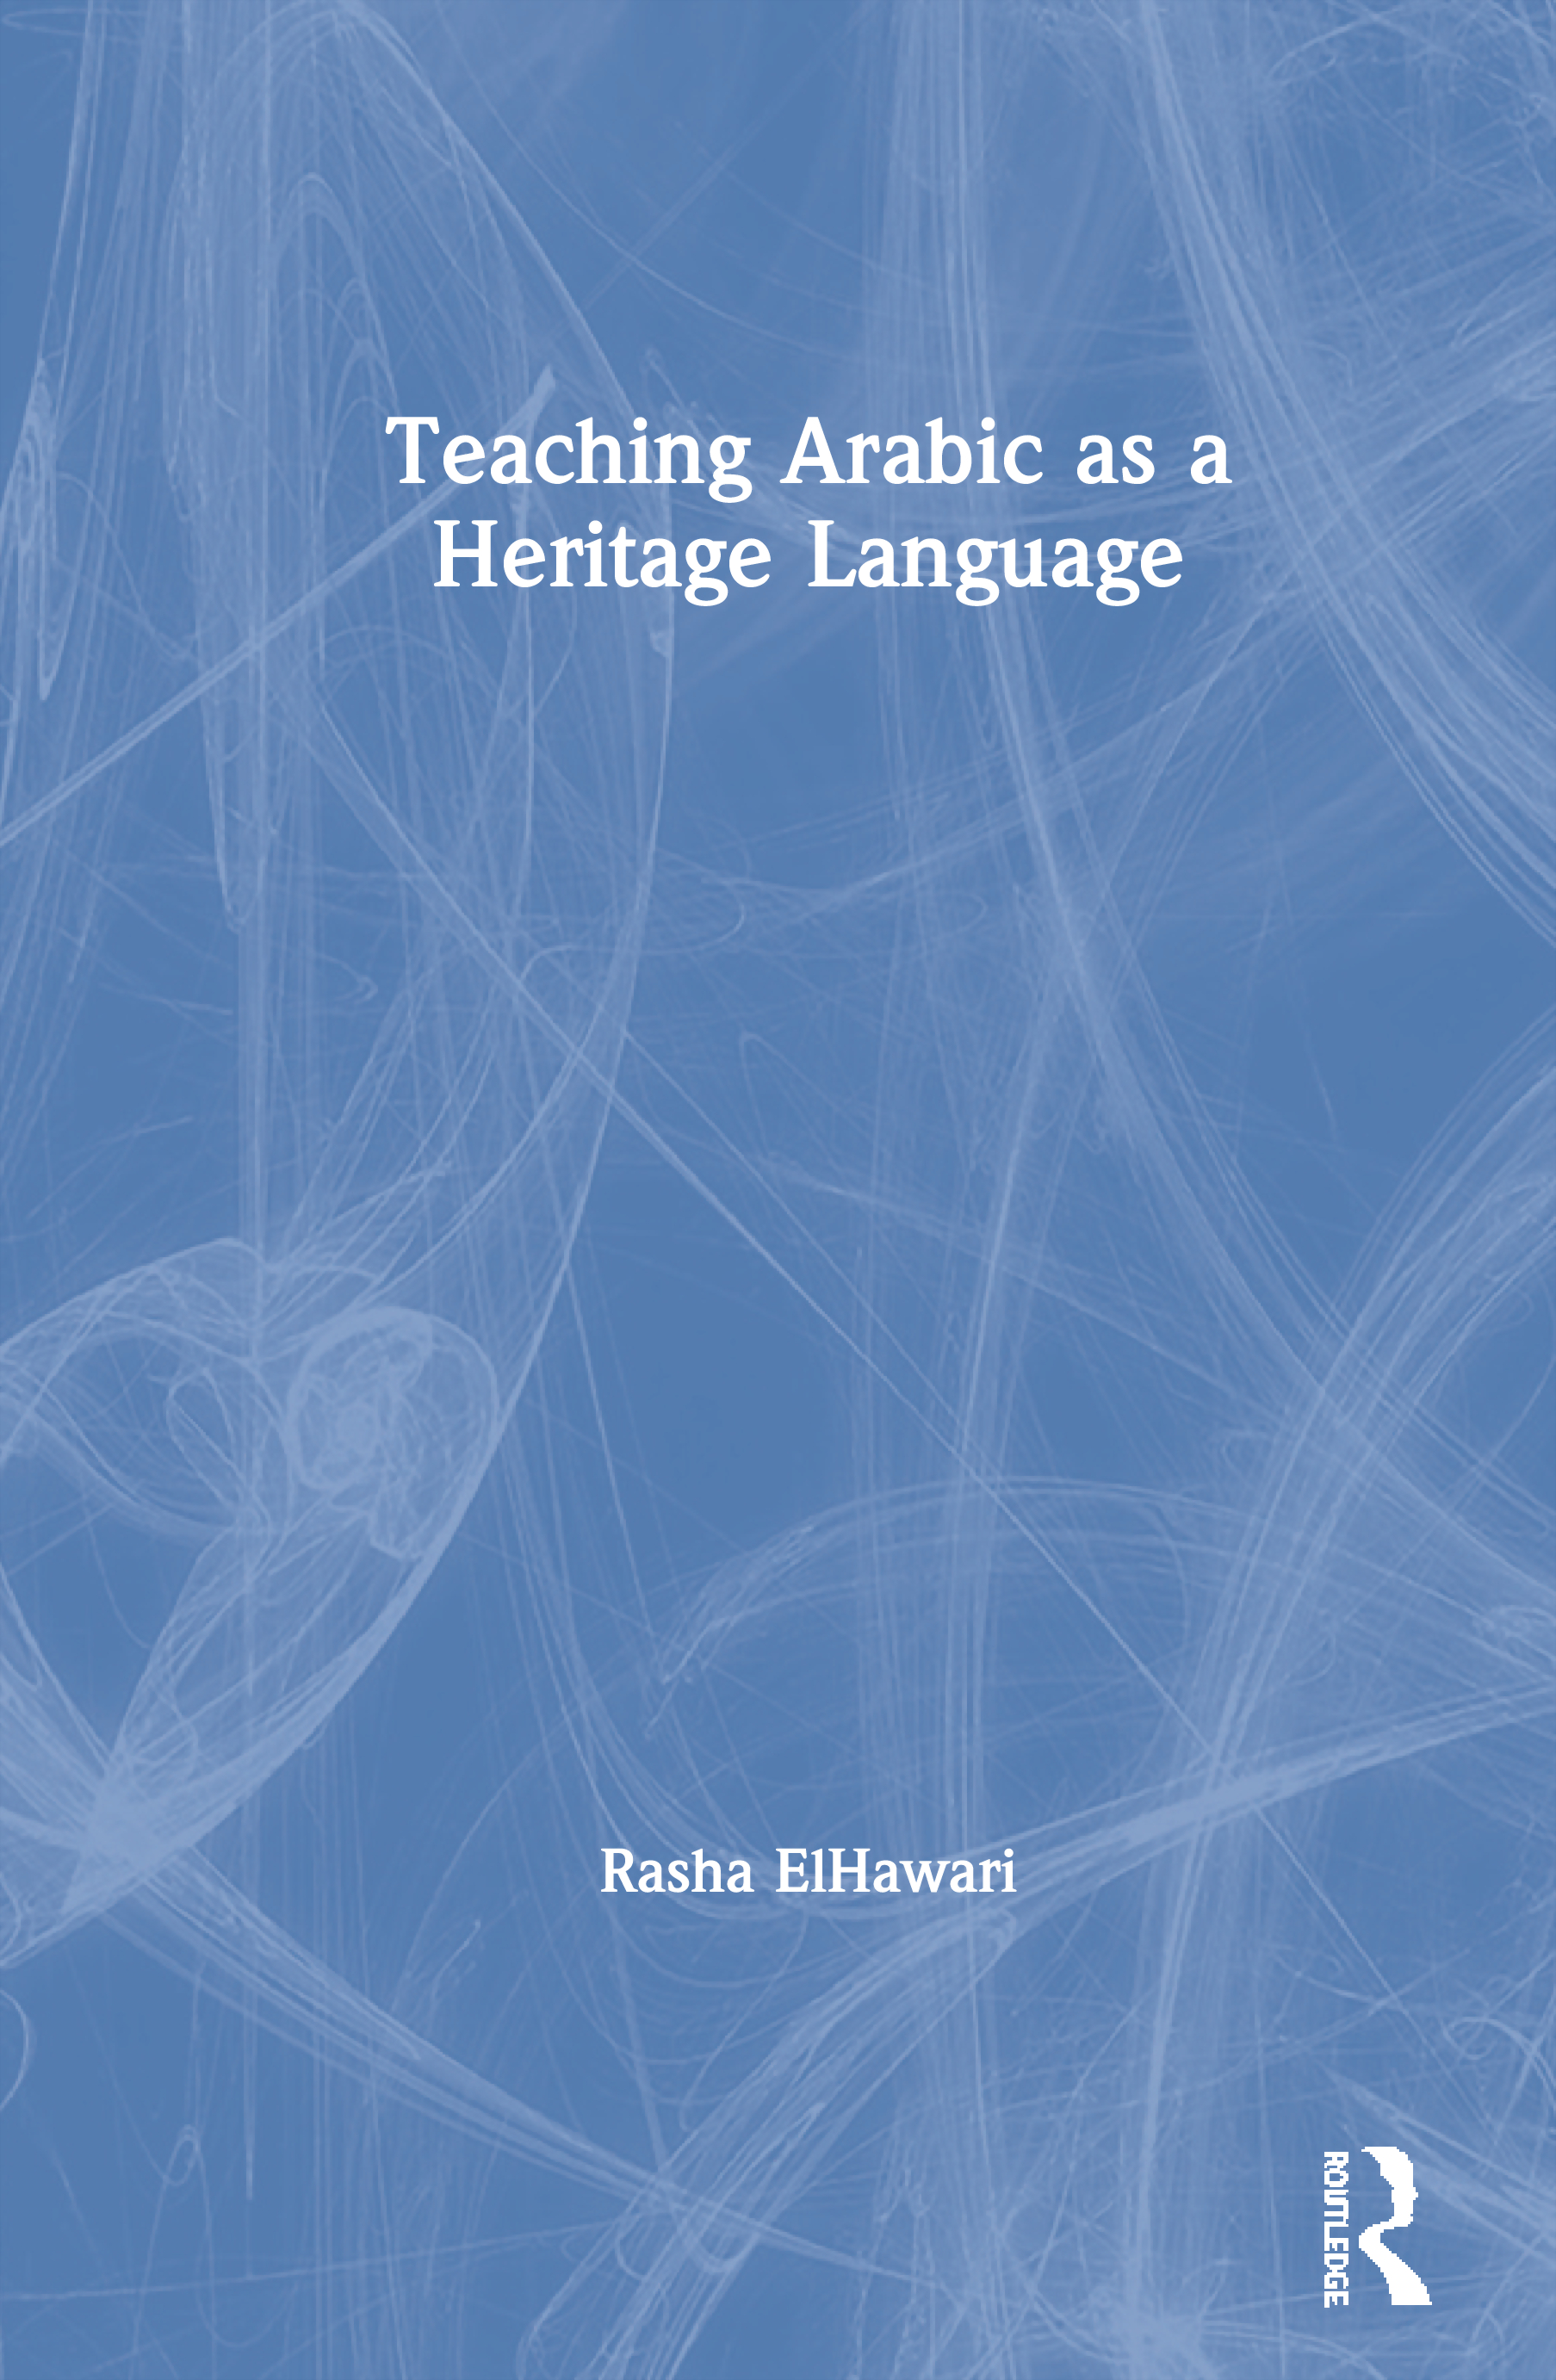 The heritage language learner and the Arabic language classroom